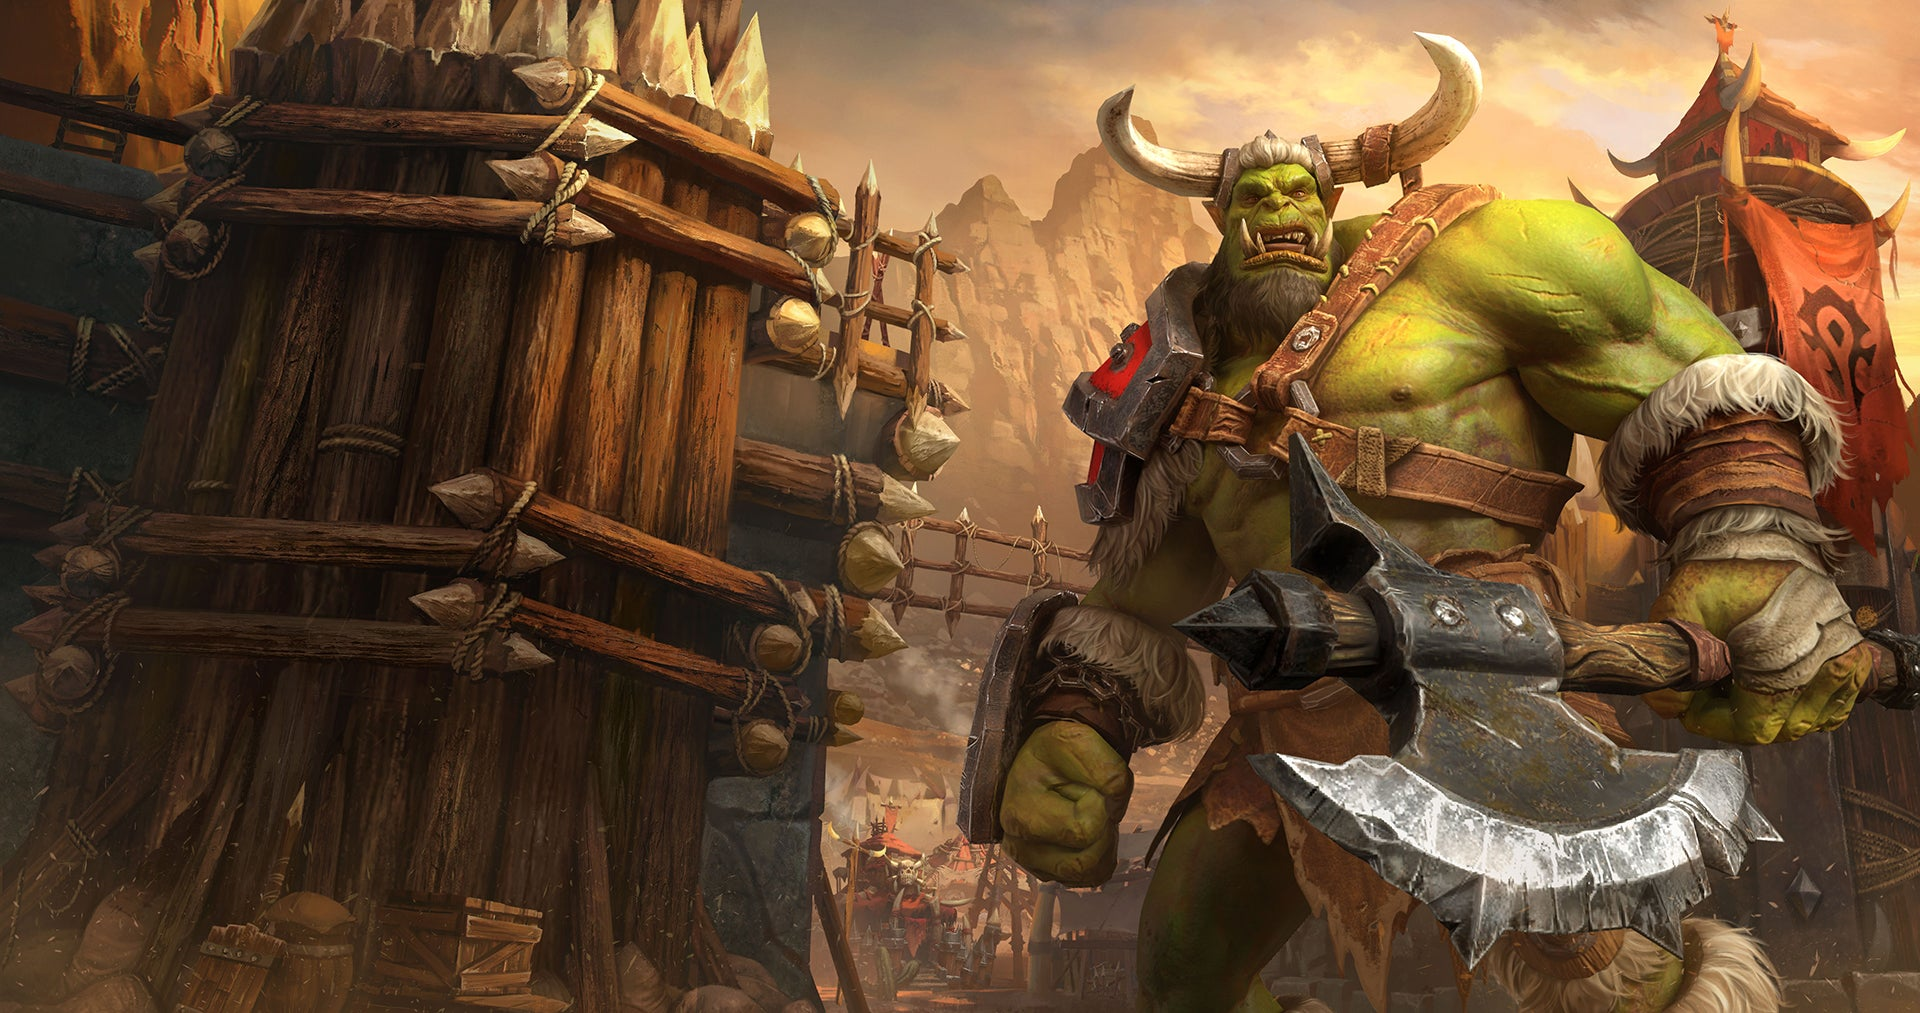 Warcraft 3: Reforged Isn't Much Of An Upgrade